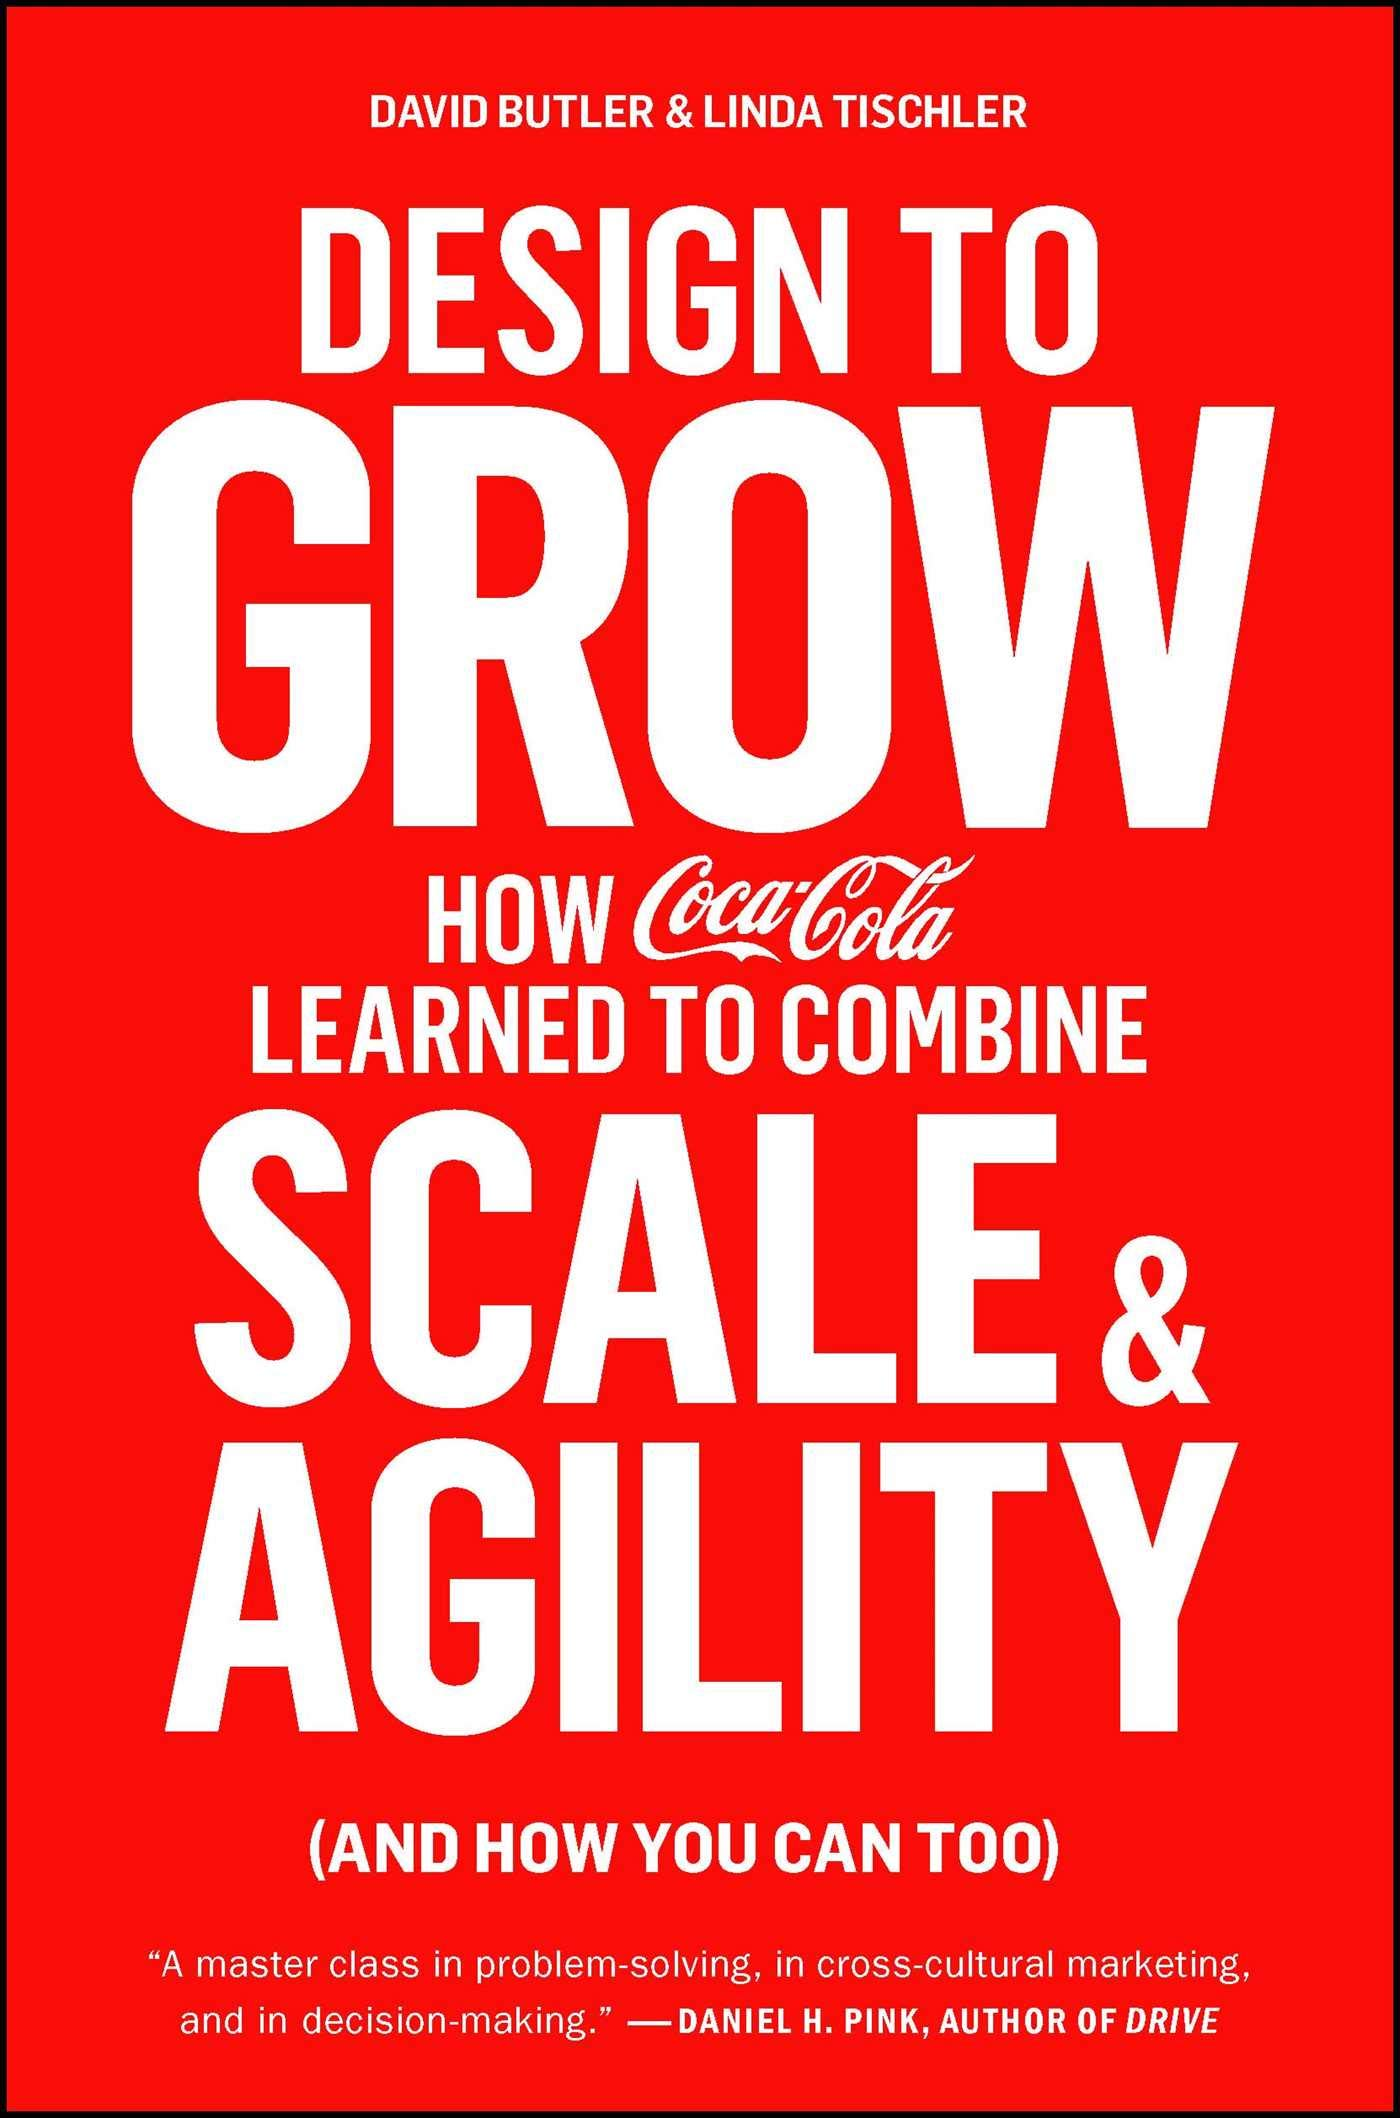 Amazon Com Design To Grow How Coca Cola Learned To Combine Scale And Agility And How You Can Too 9781451676266 Butler David Tischler Linda Books